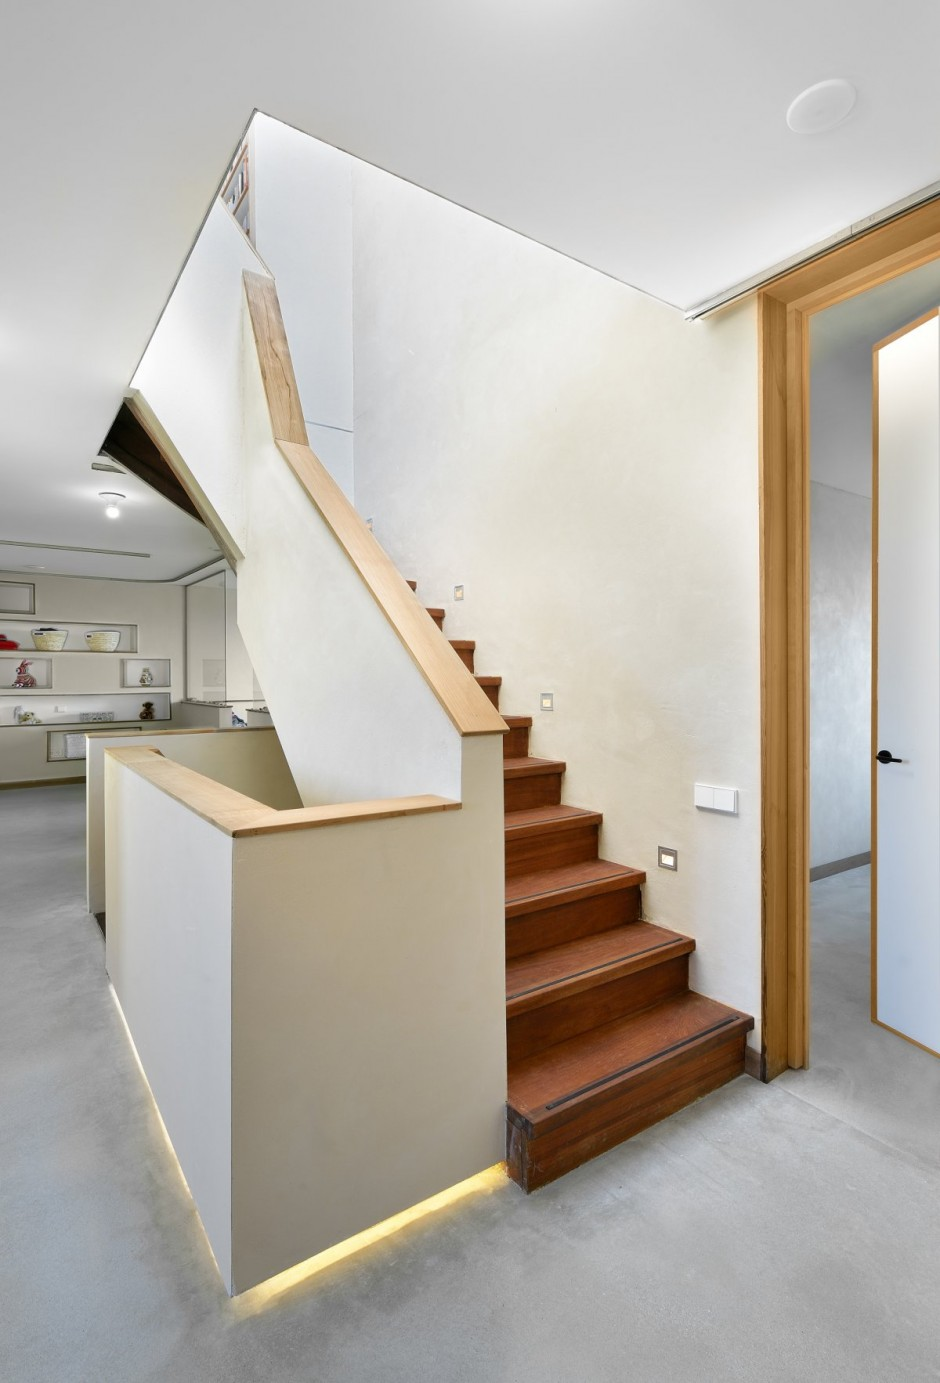 staircase design Villa Rieteiland-Oost by Egeon Architecten